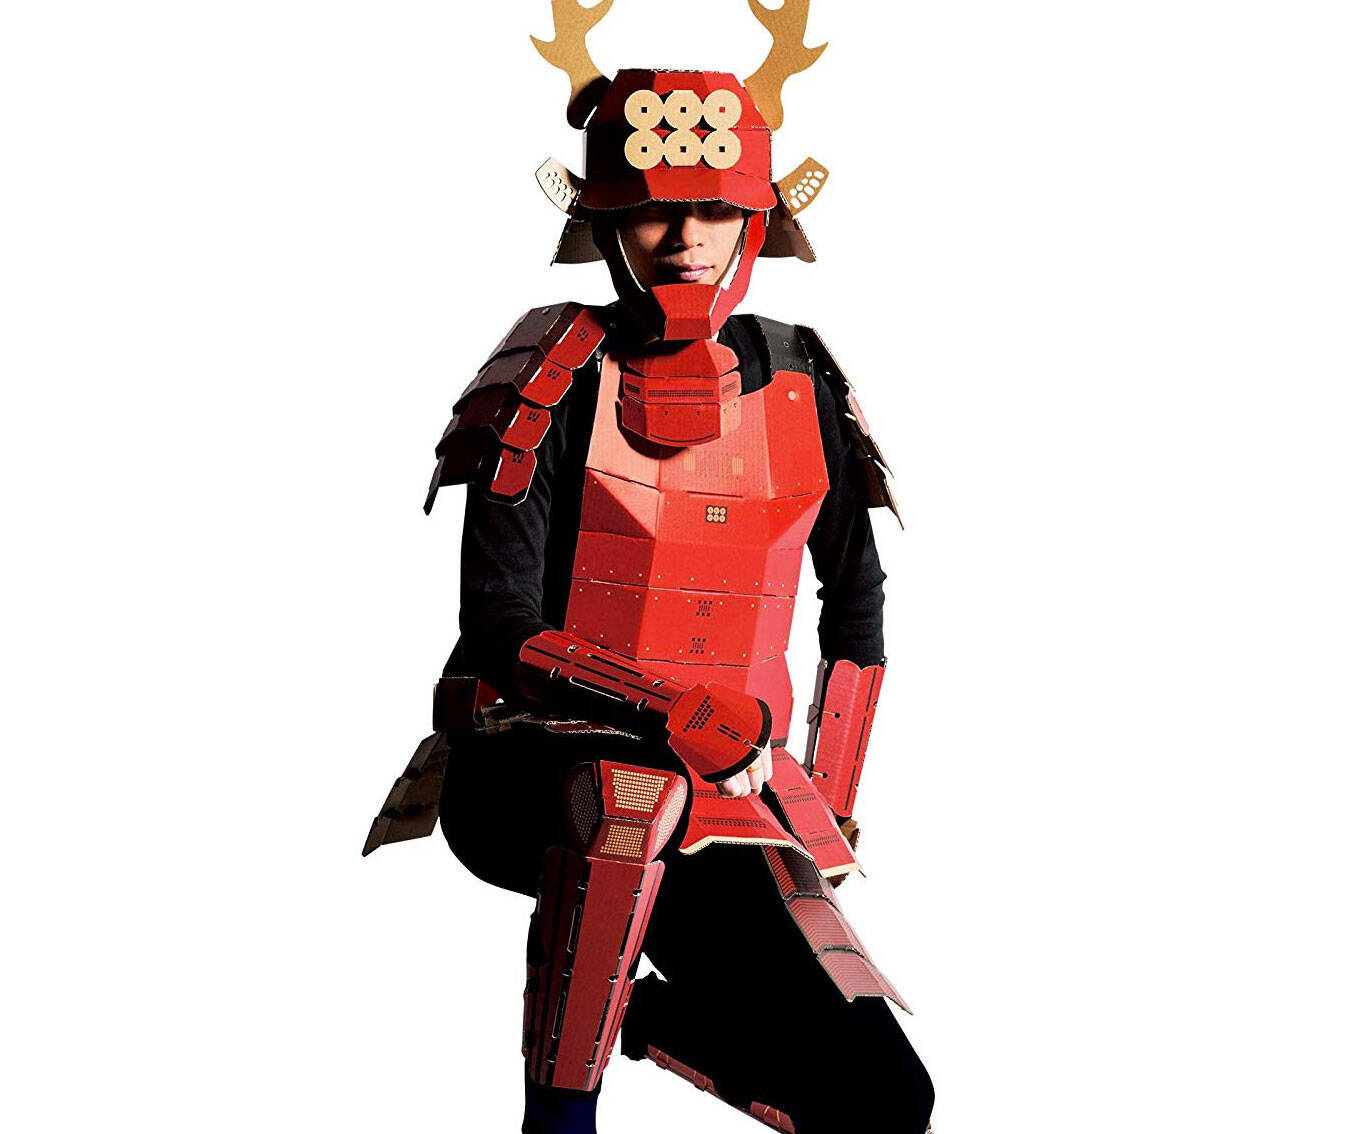 Cardboard Samurai Costume - http://coolthings.us